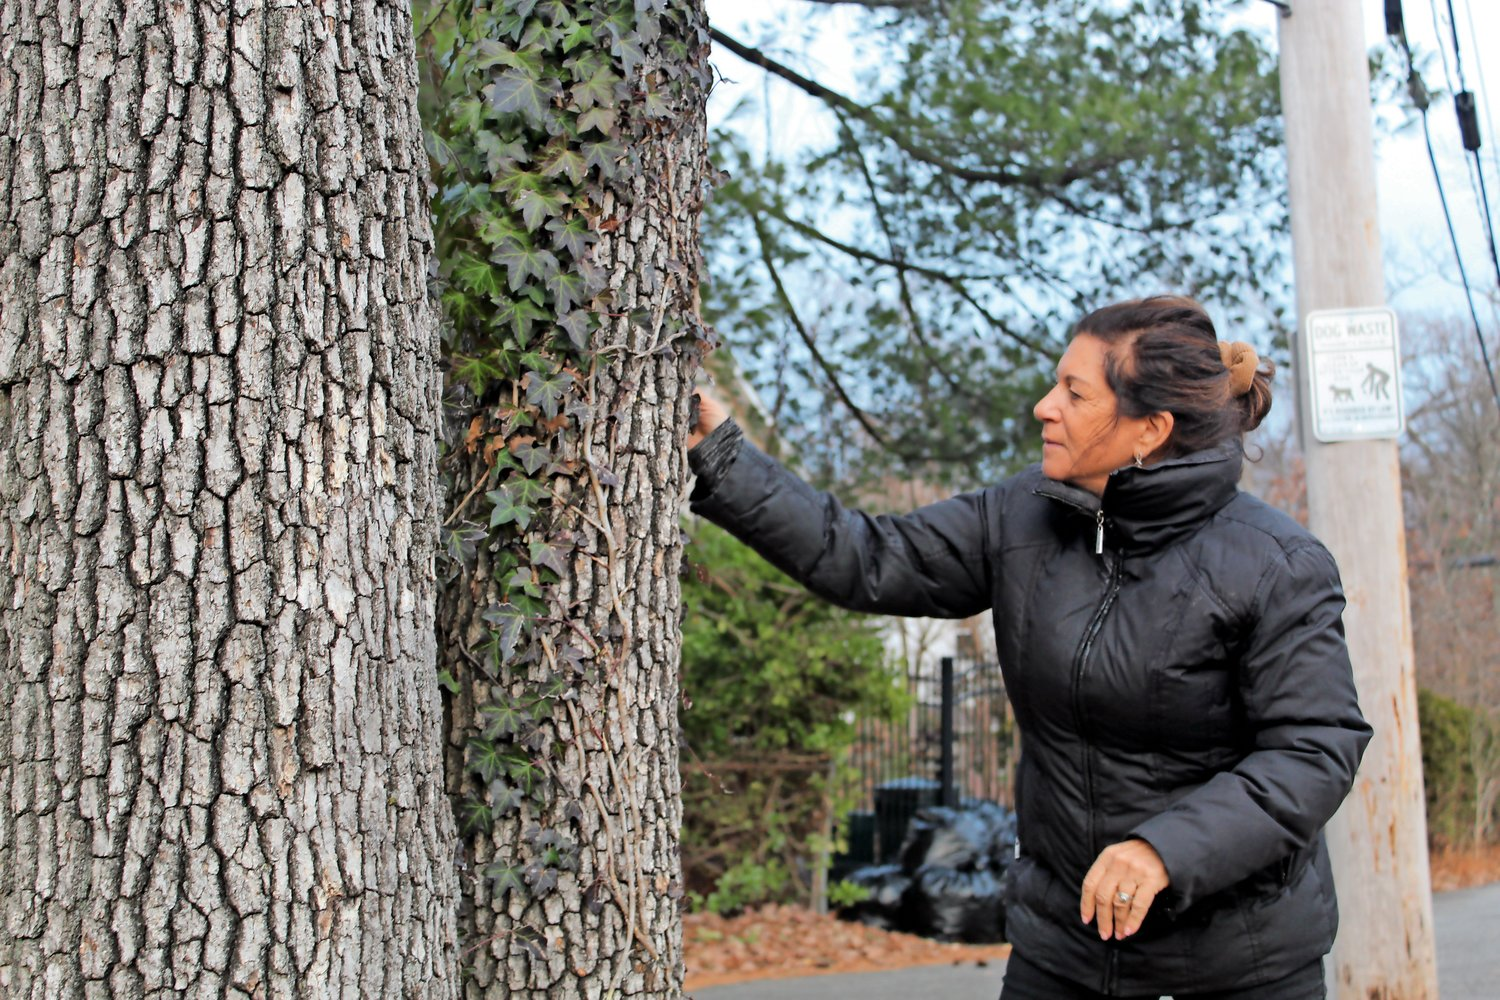 Marcia DiTieri, of Merrick, removed vines of invasive ivy from a tree in the hamlet's Tiny Town neighborhood. She is alarmed by the rate of tree removals in the area, and has advocated for a local law that would require residents to file a permit with the Town of Hempstead's Building Department before taking down trees on private property.